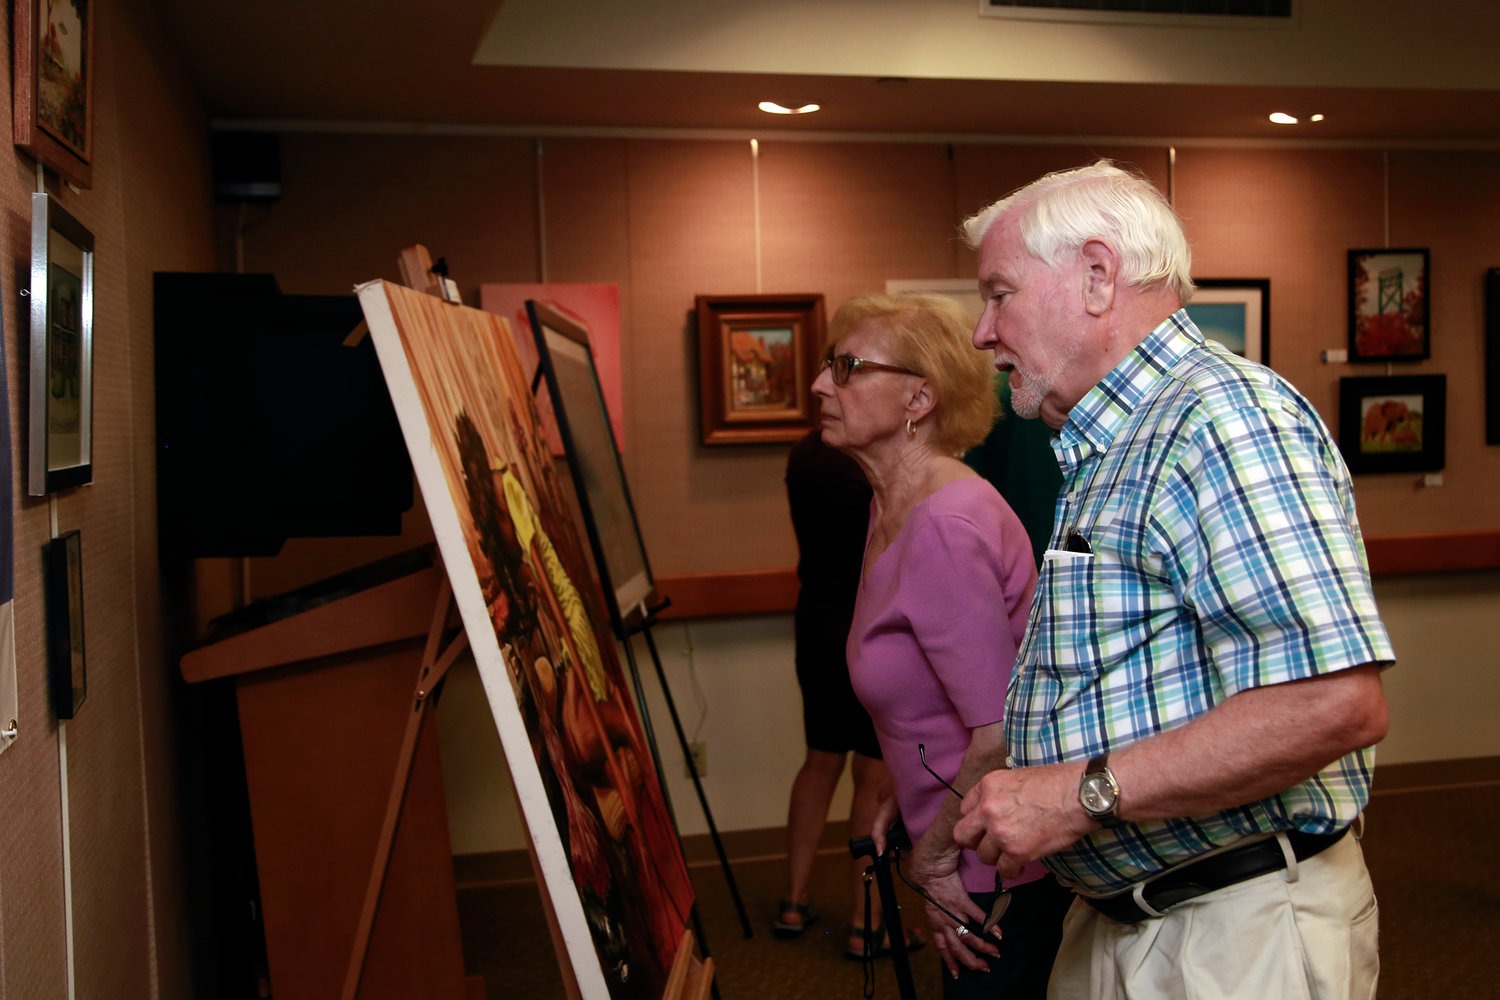 Barbara and Neil Gilmartin checked out some of the artwork at the library.